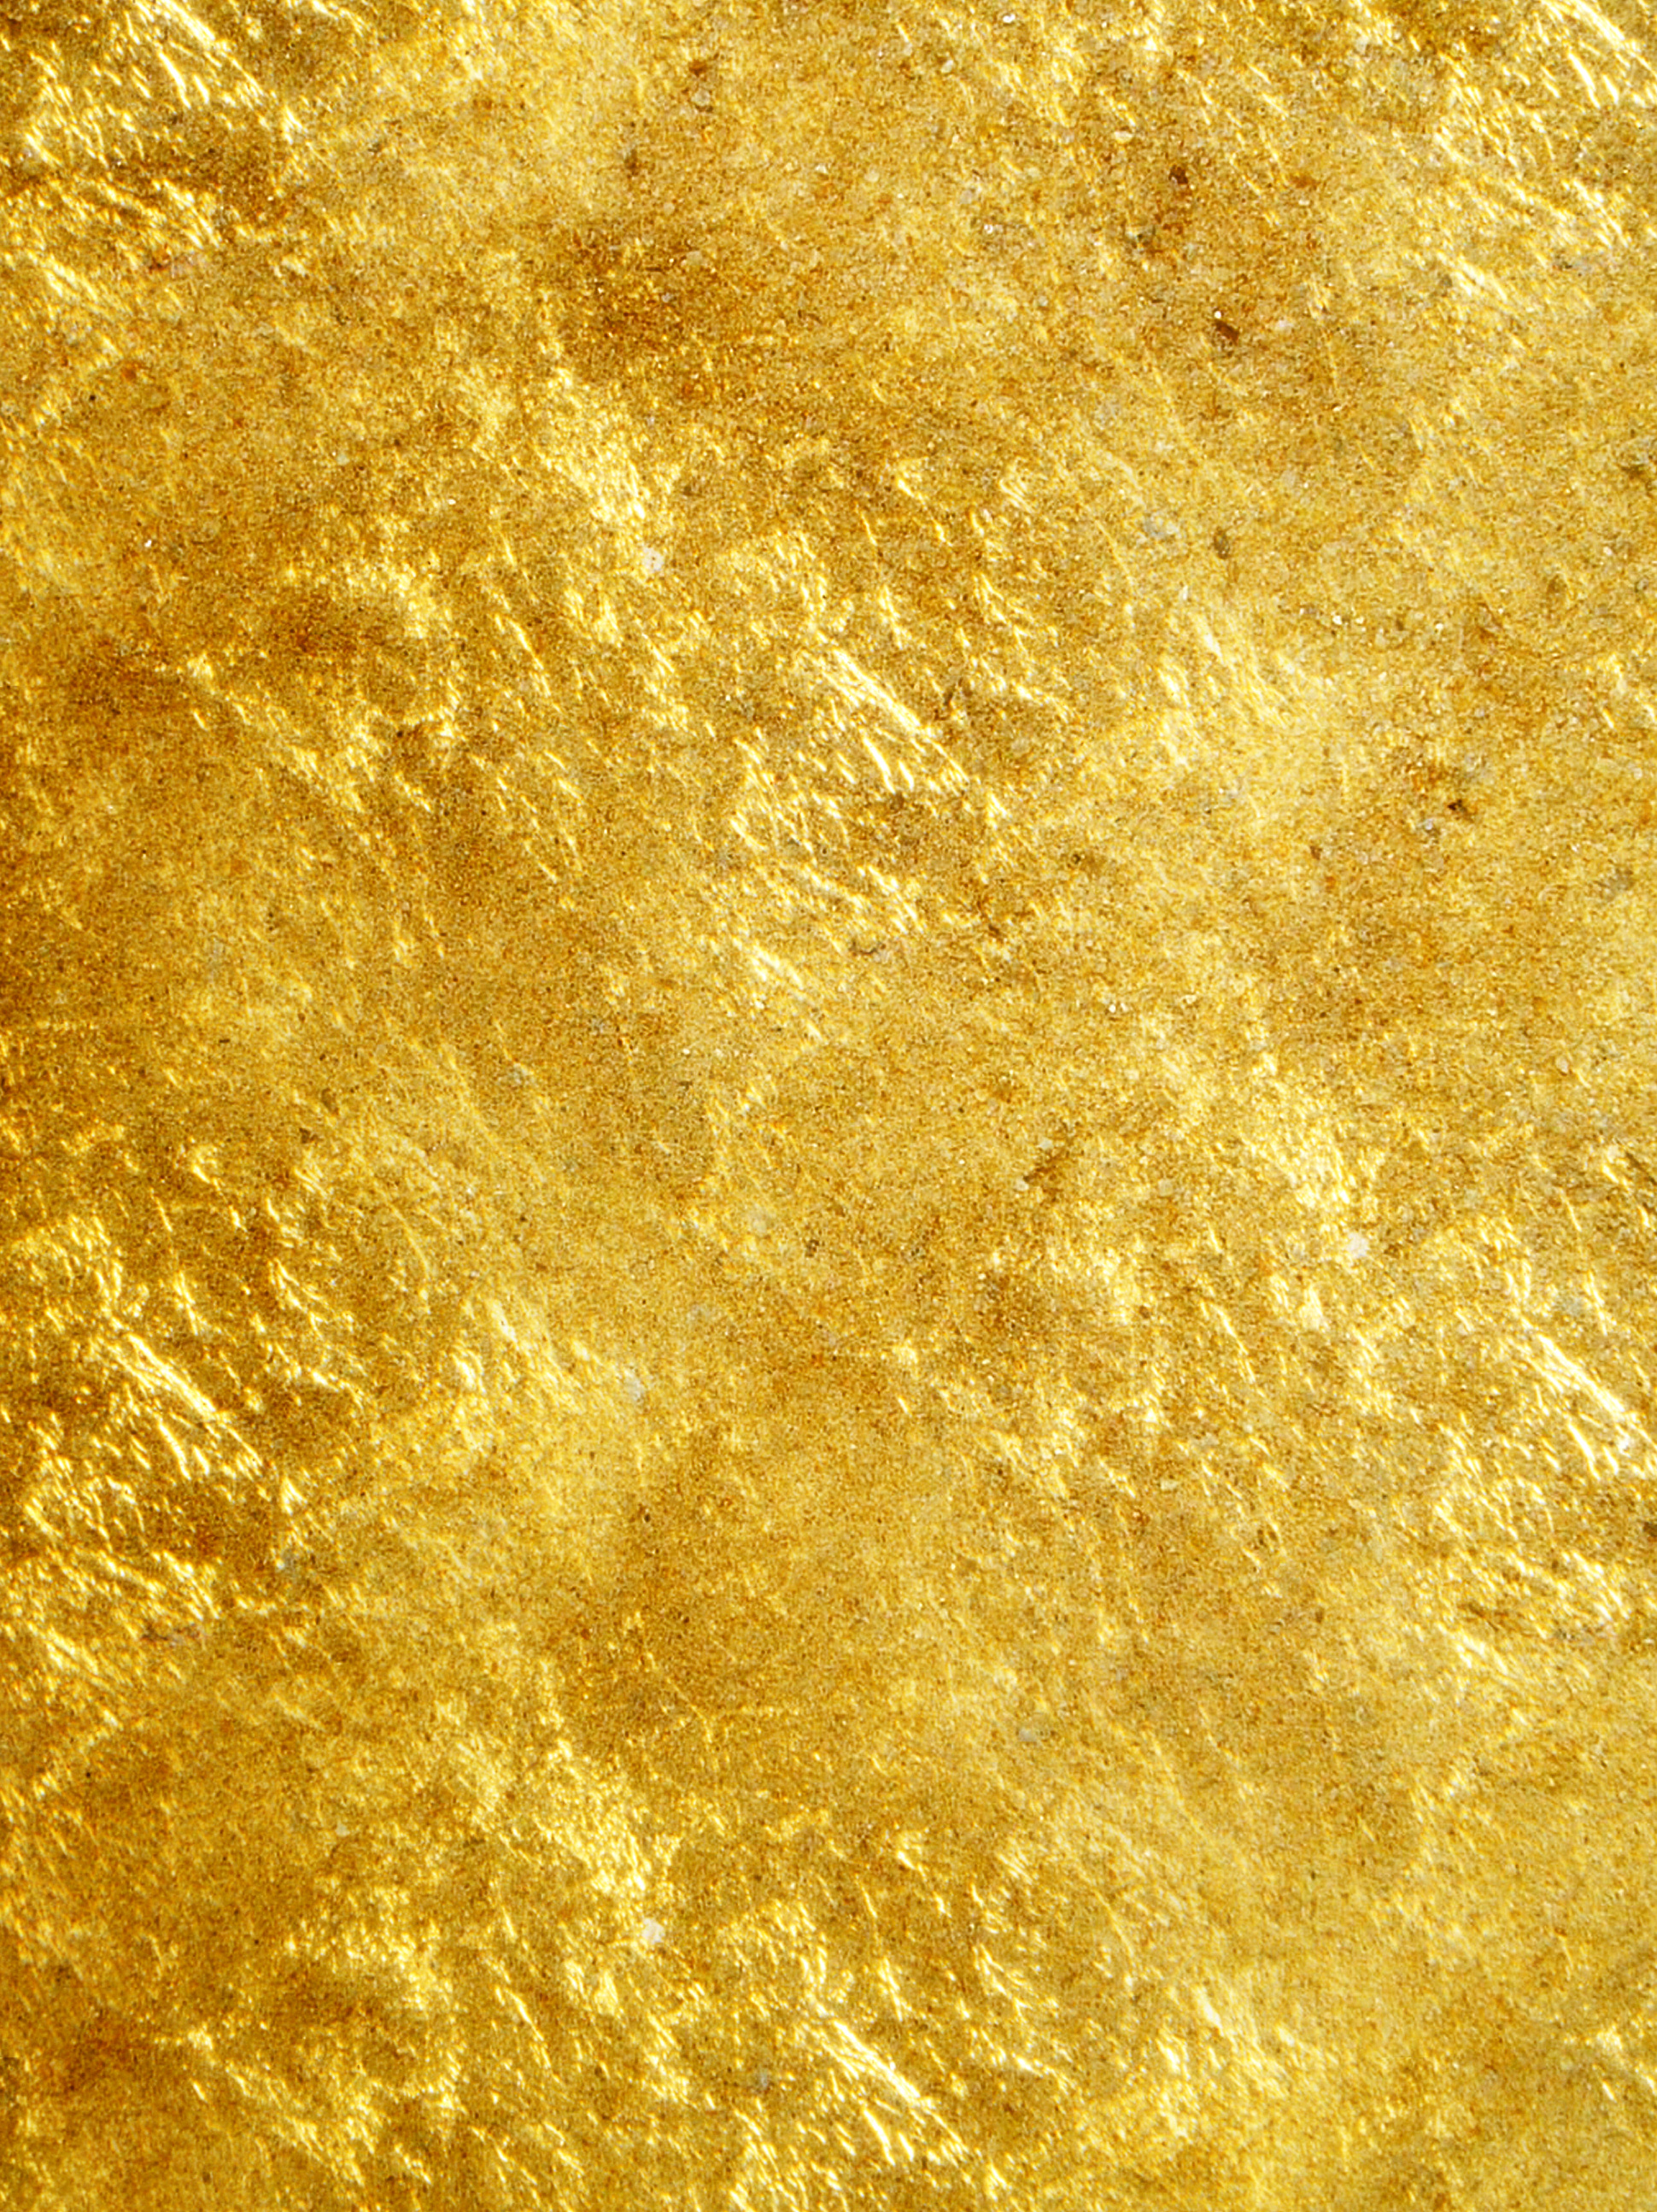 Images of Gold   1940x2590